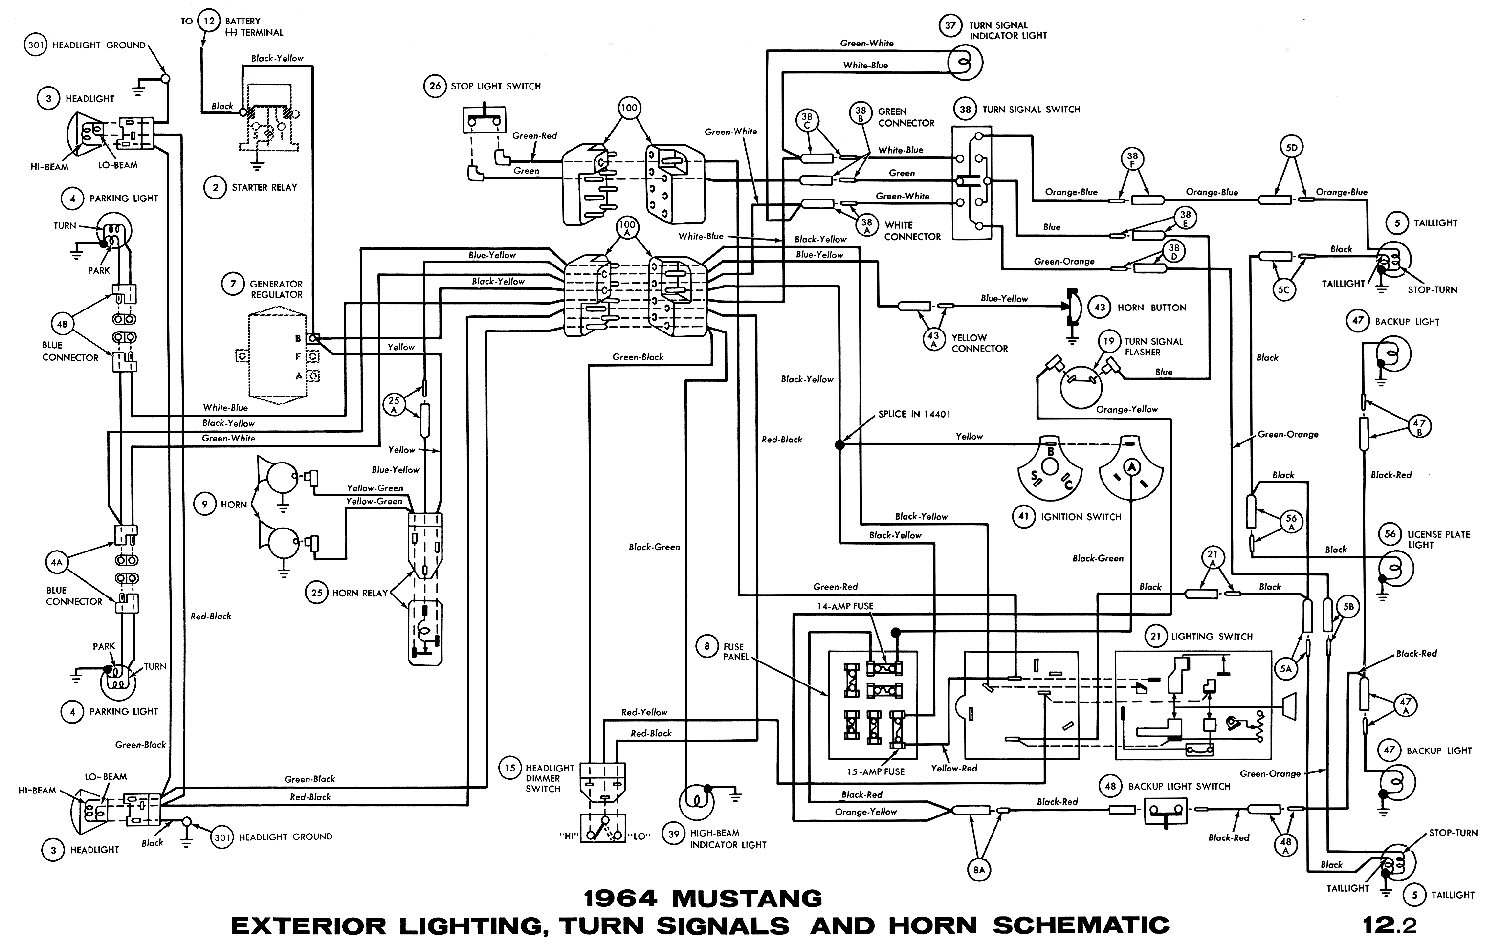 66 mustang horn diagram 23 wiring diagram images 1965 Mustang Color Wiring  Diagram 1966 Mustang Dash